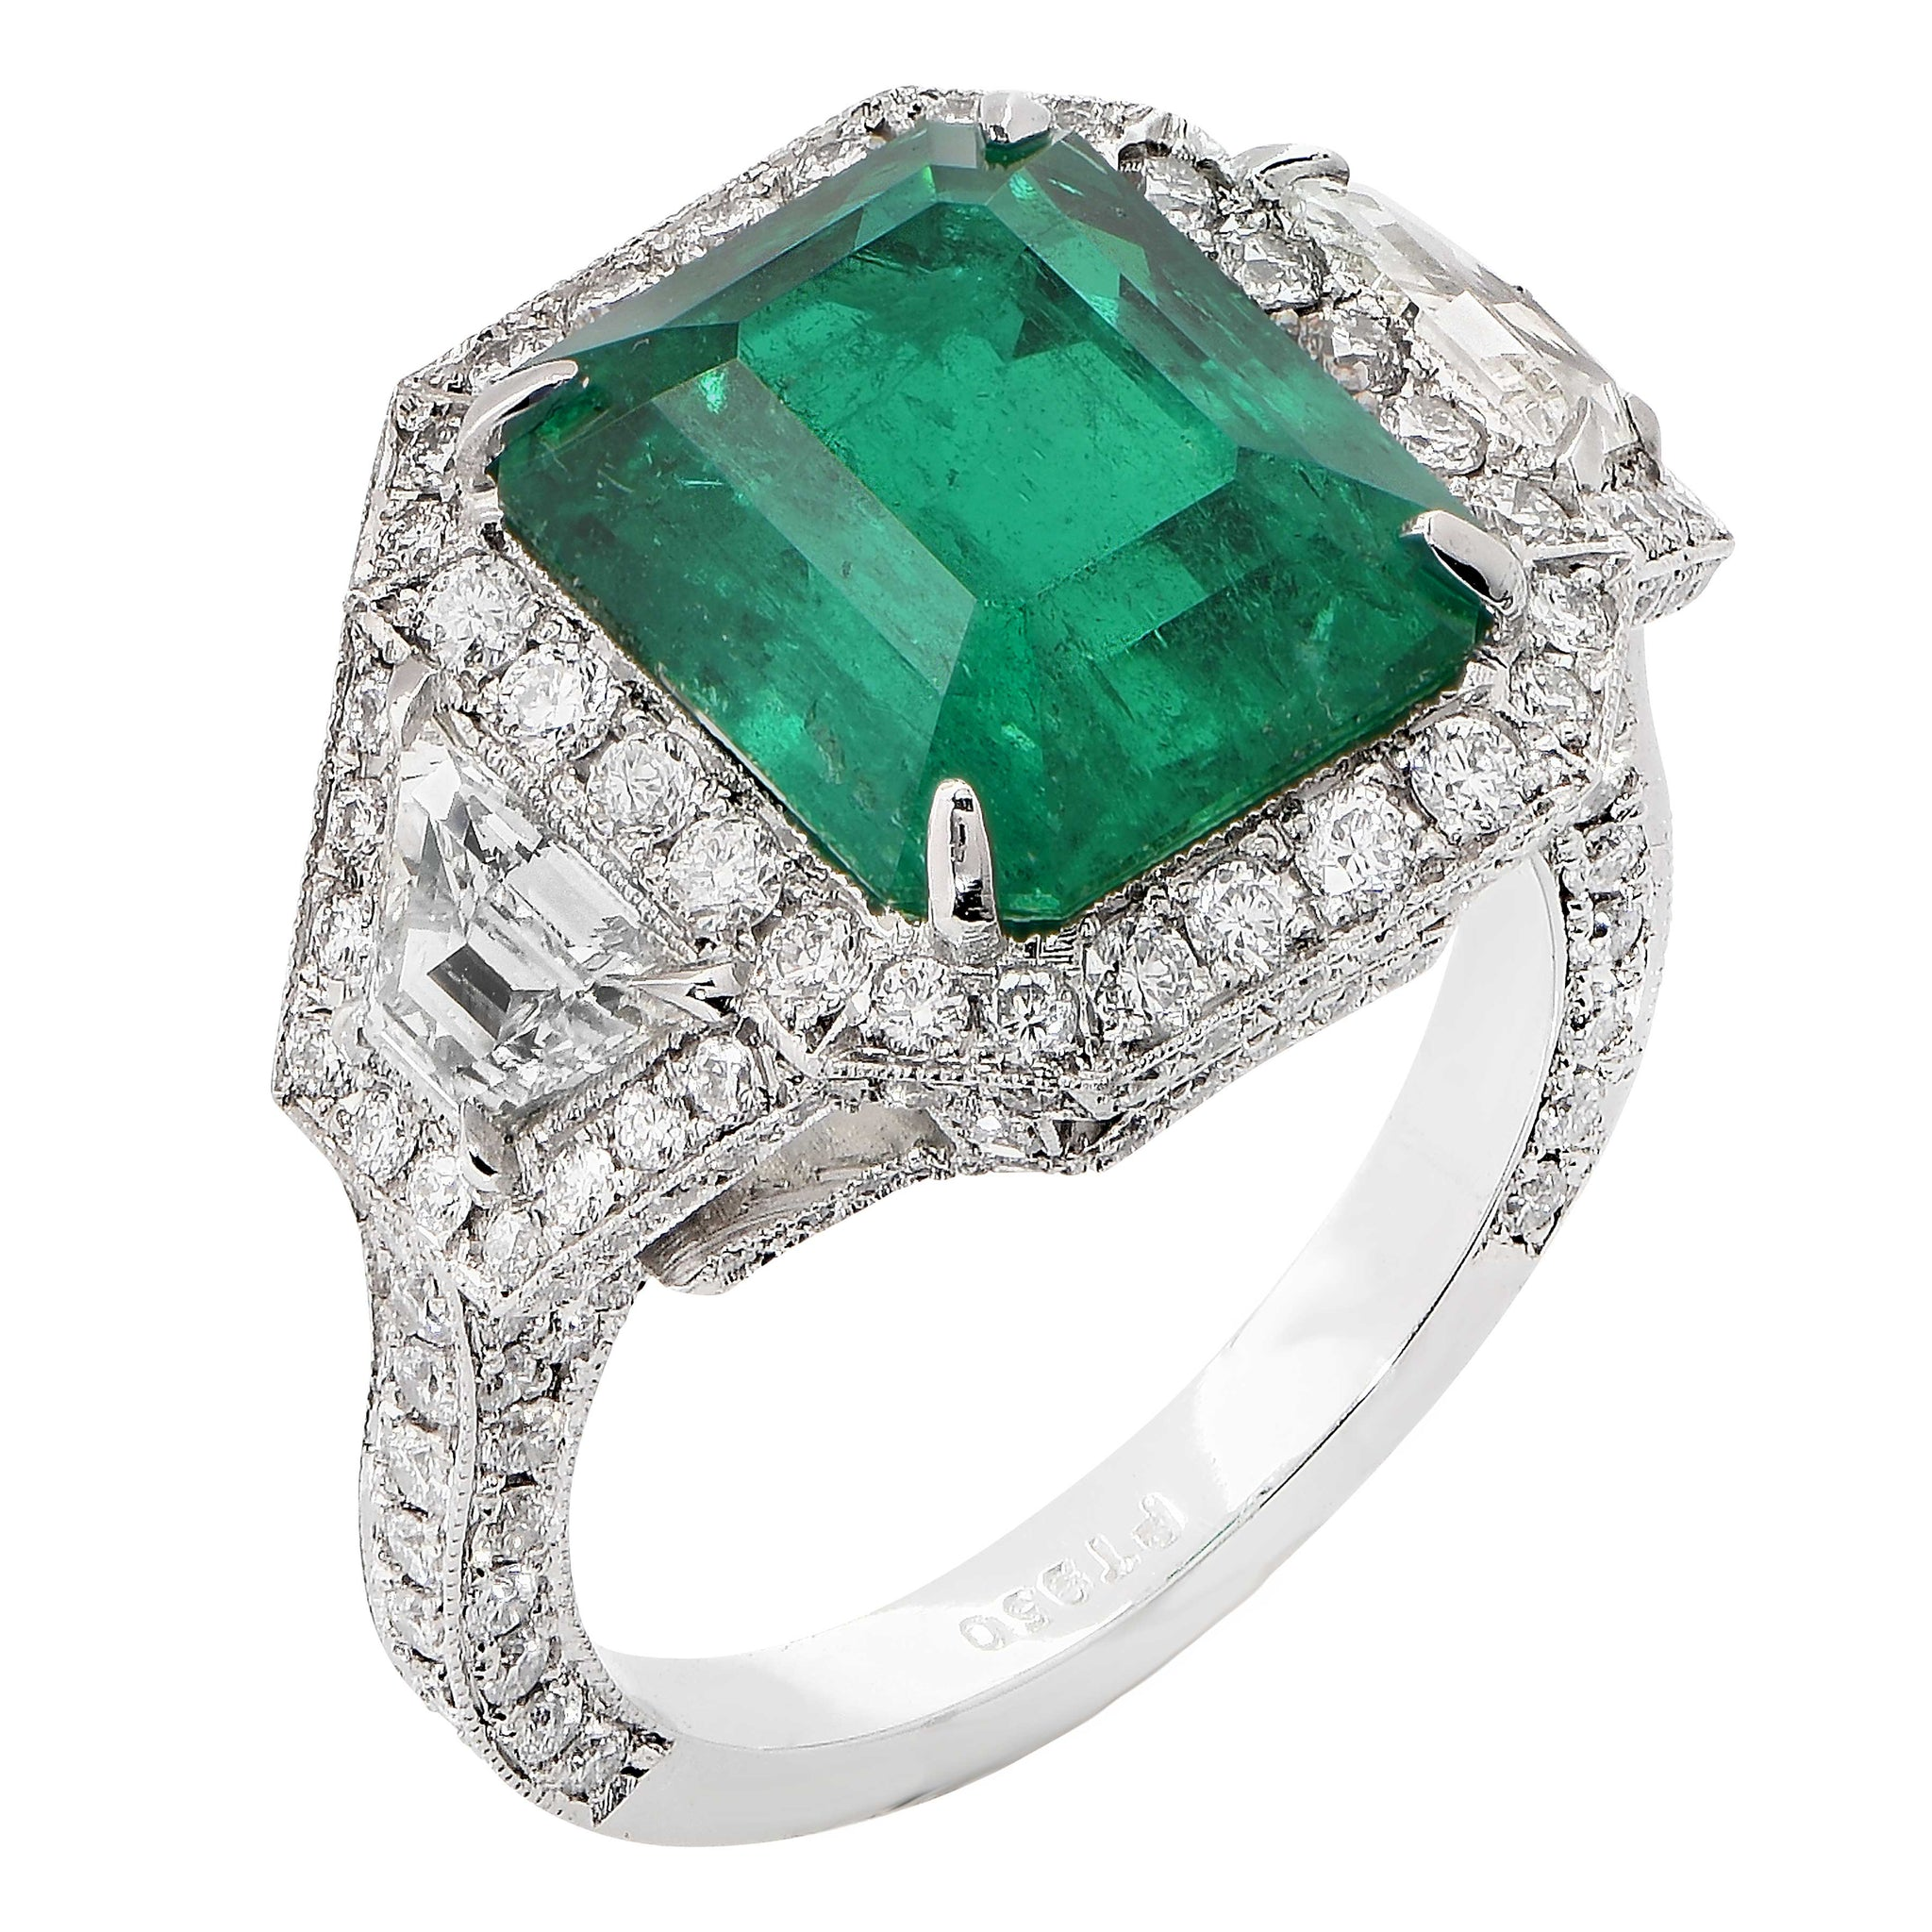 worldwide cleanest be purest mines known blog hues emeralds consumer colombia with those green and image to s expert in a jewelry consider heat are emerald terms the guide treated consumers from